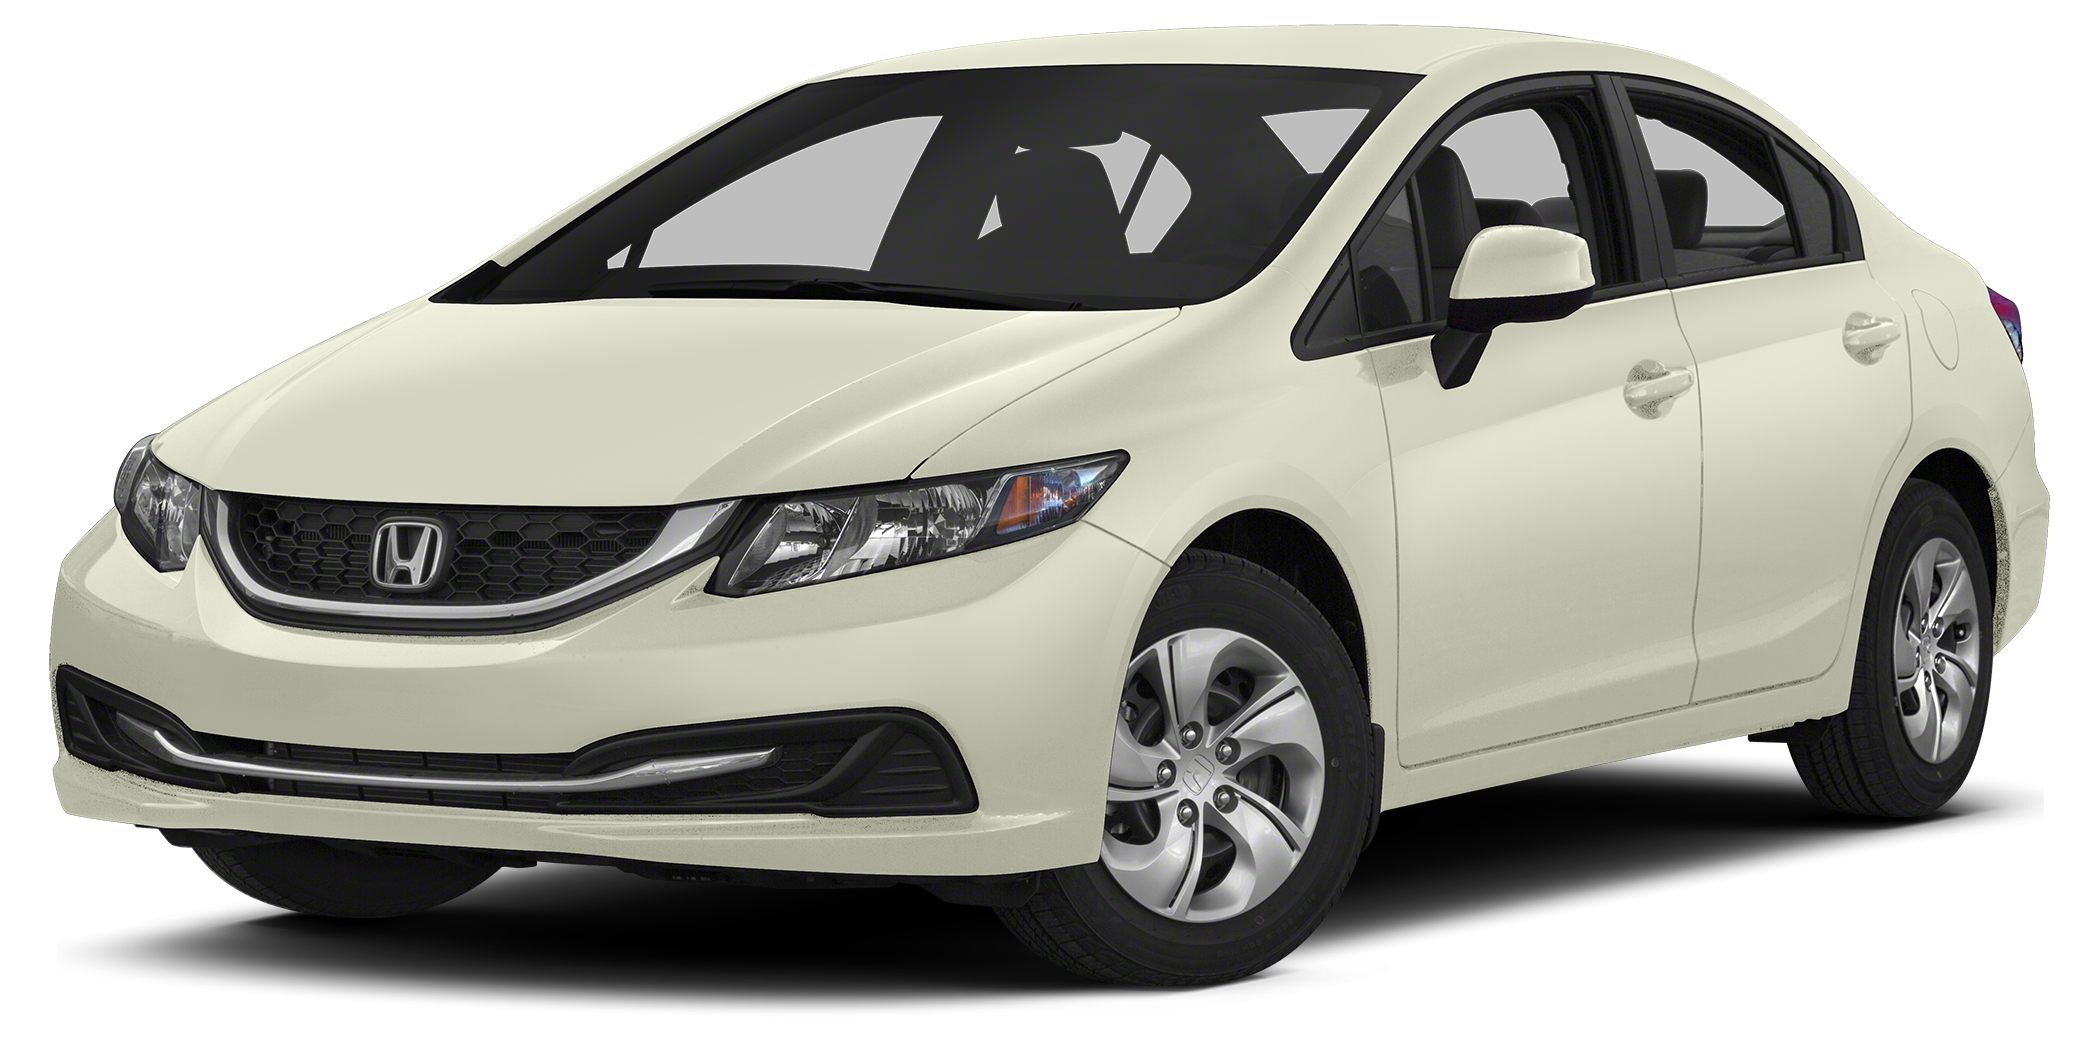 2013 Honda Civic LX Miles 13415Color Taffeta White Stock 603620 VIN 2HGFB2F50DH603620